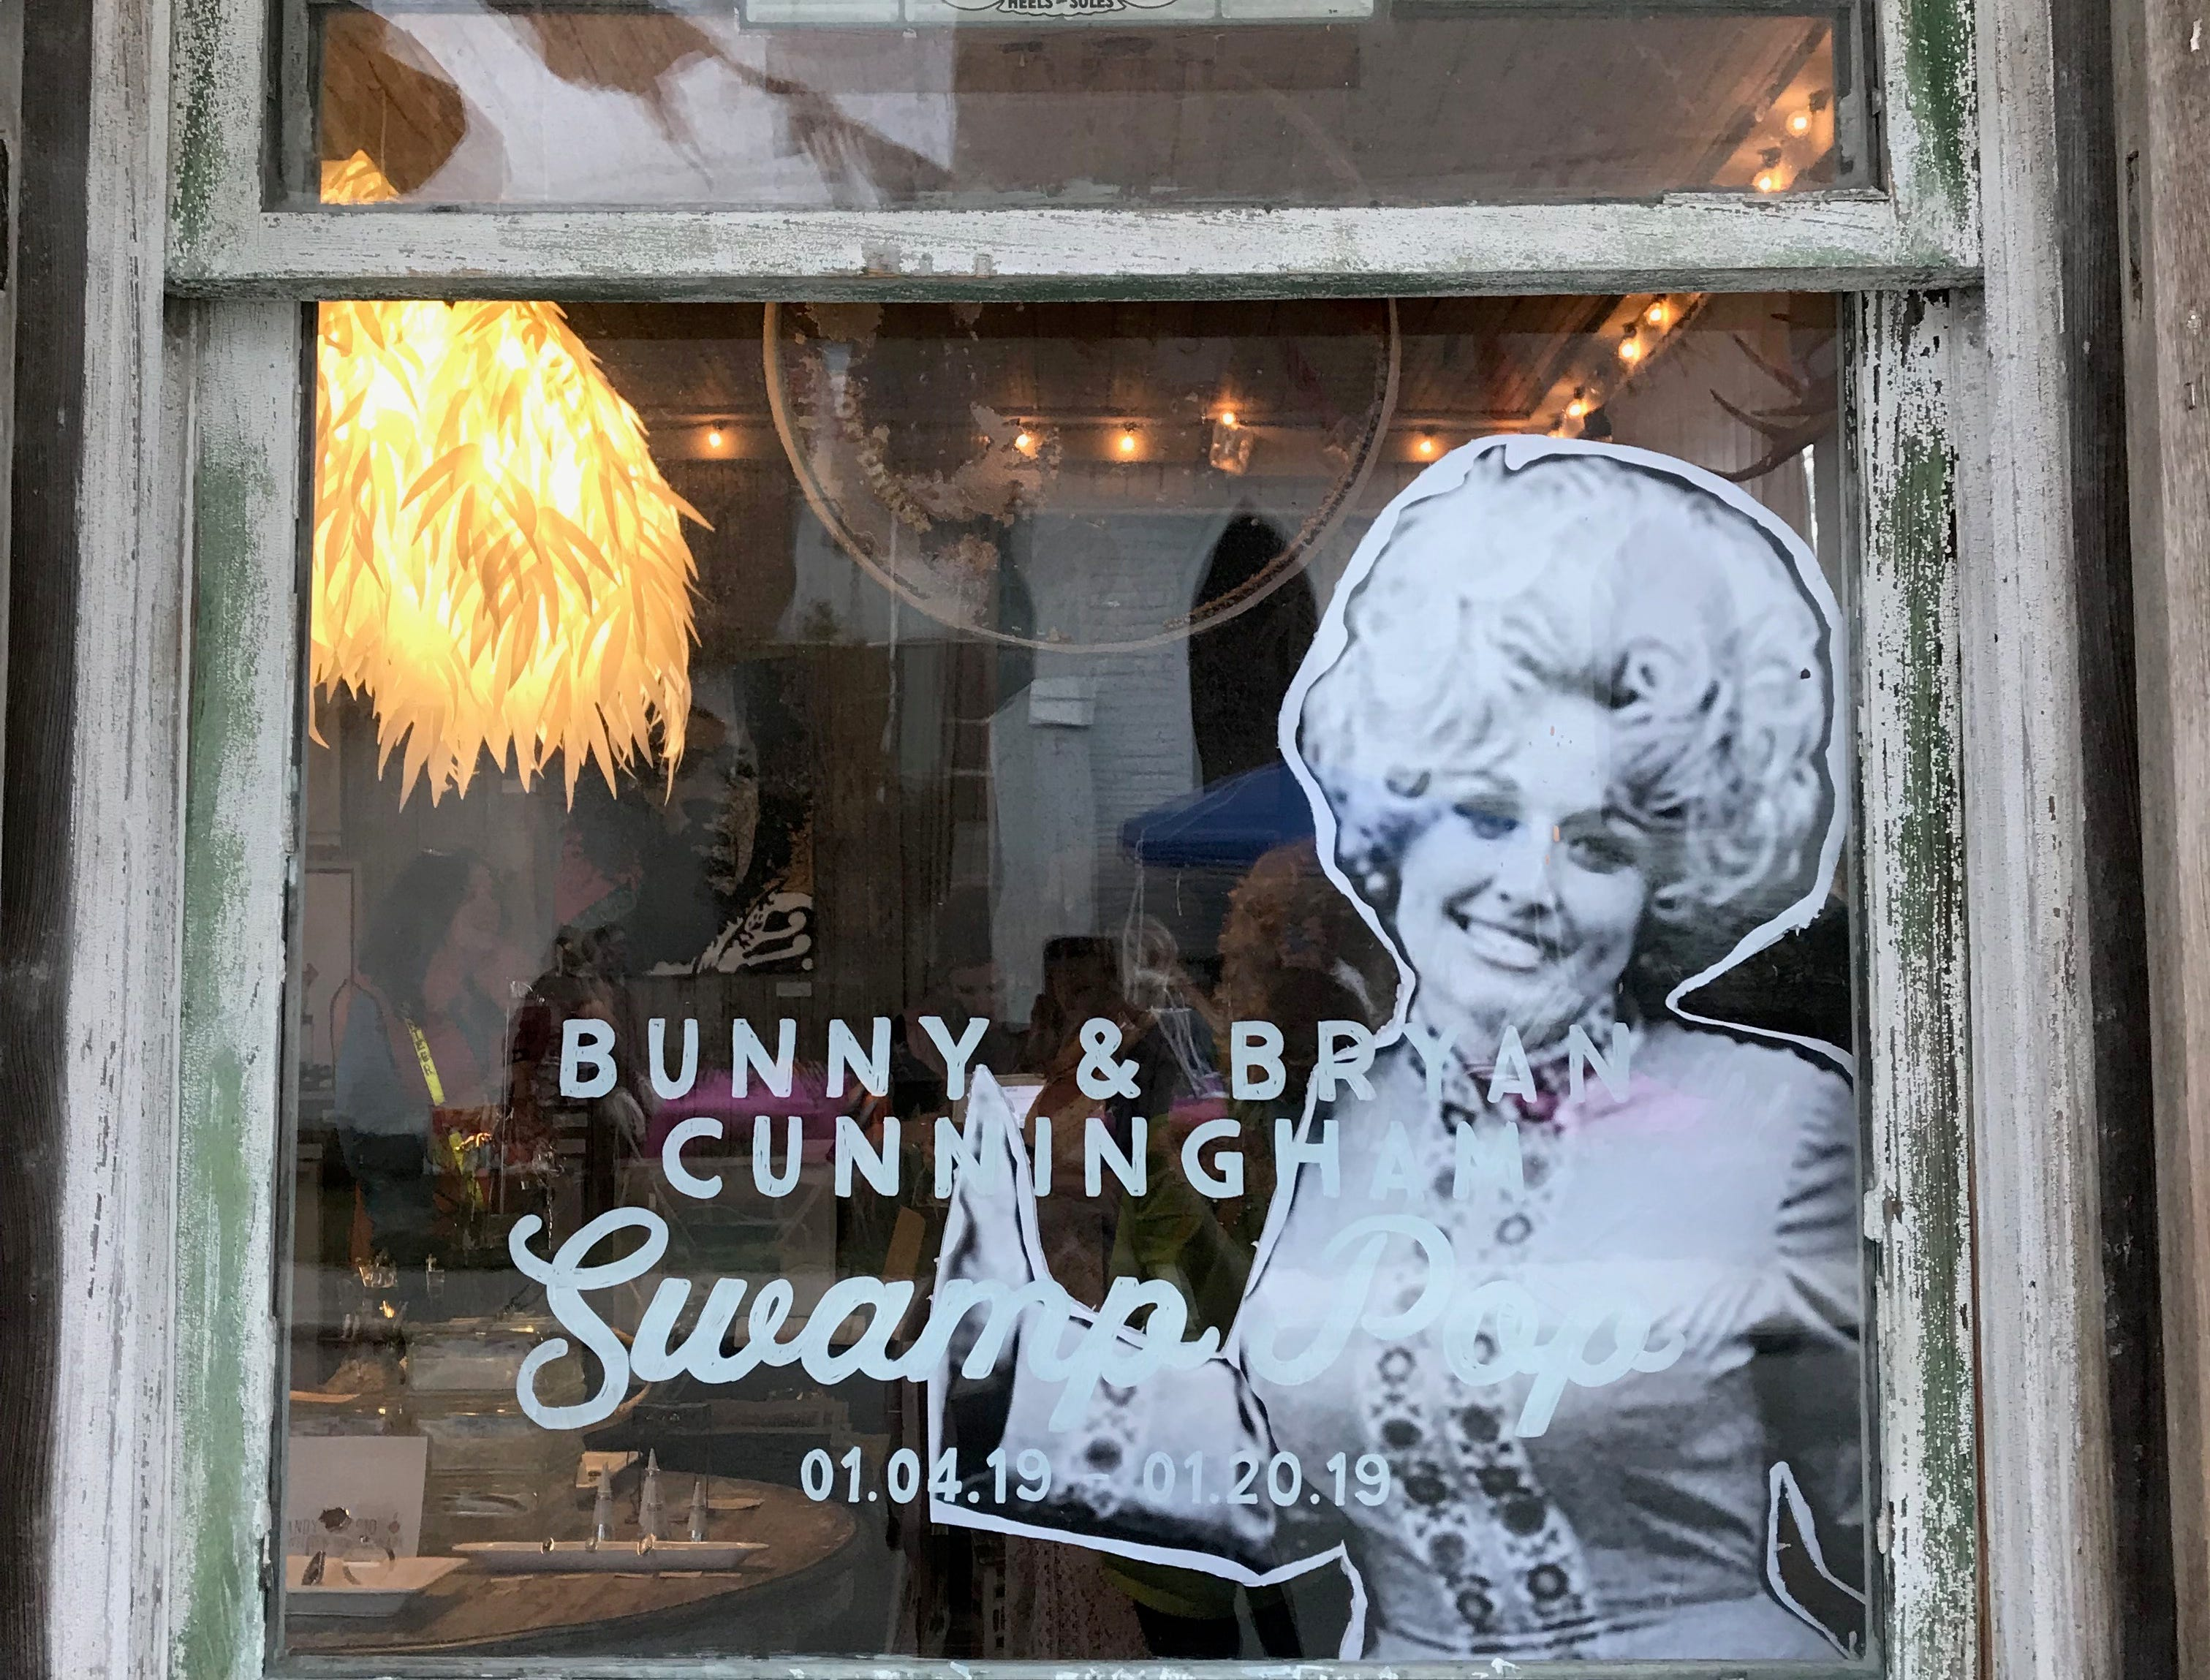 A cutout image of singer Dolly Parton is displayed prominently in the window of Smith & Lens gallery during the 4th annual Dolly Should festival held in Bay St. Louis. Saturday,  Jan. 12, 2019.